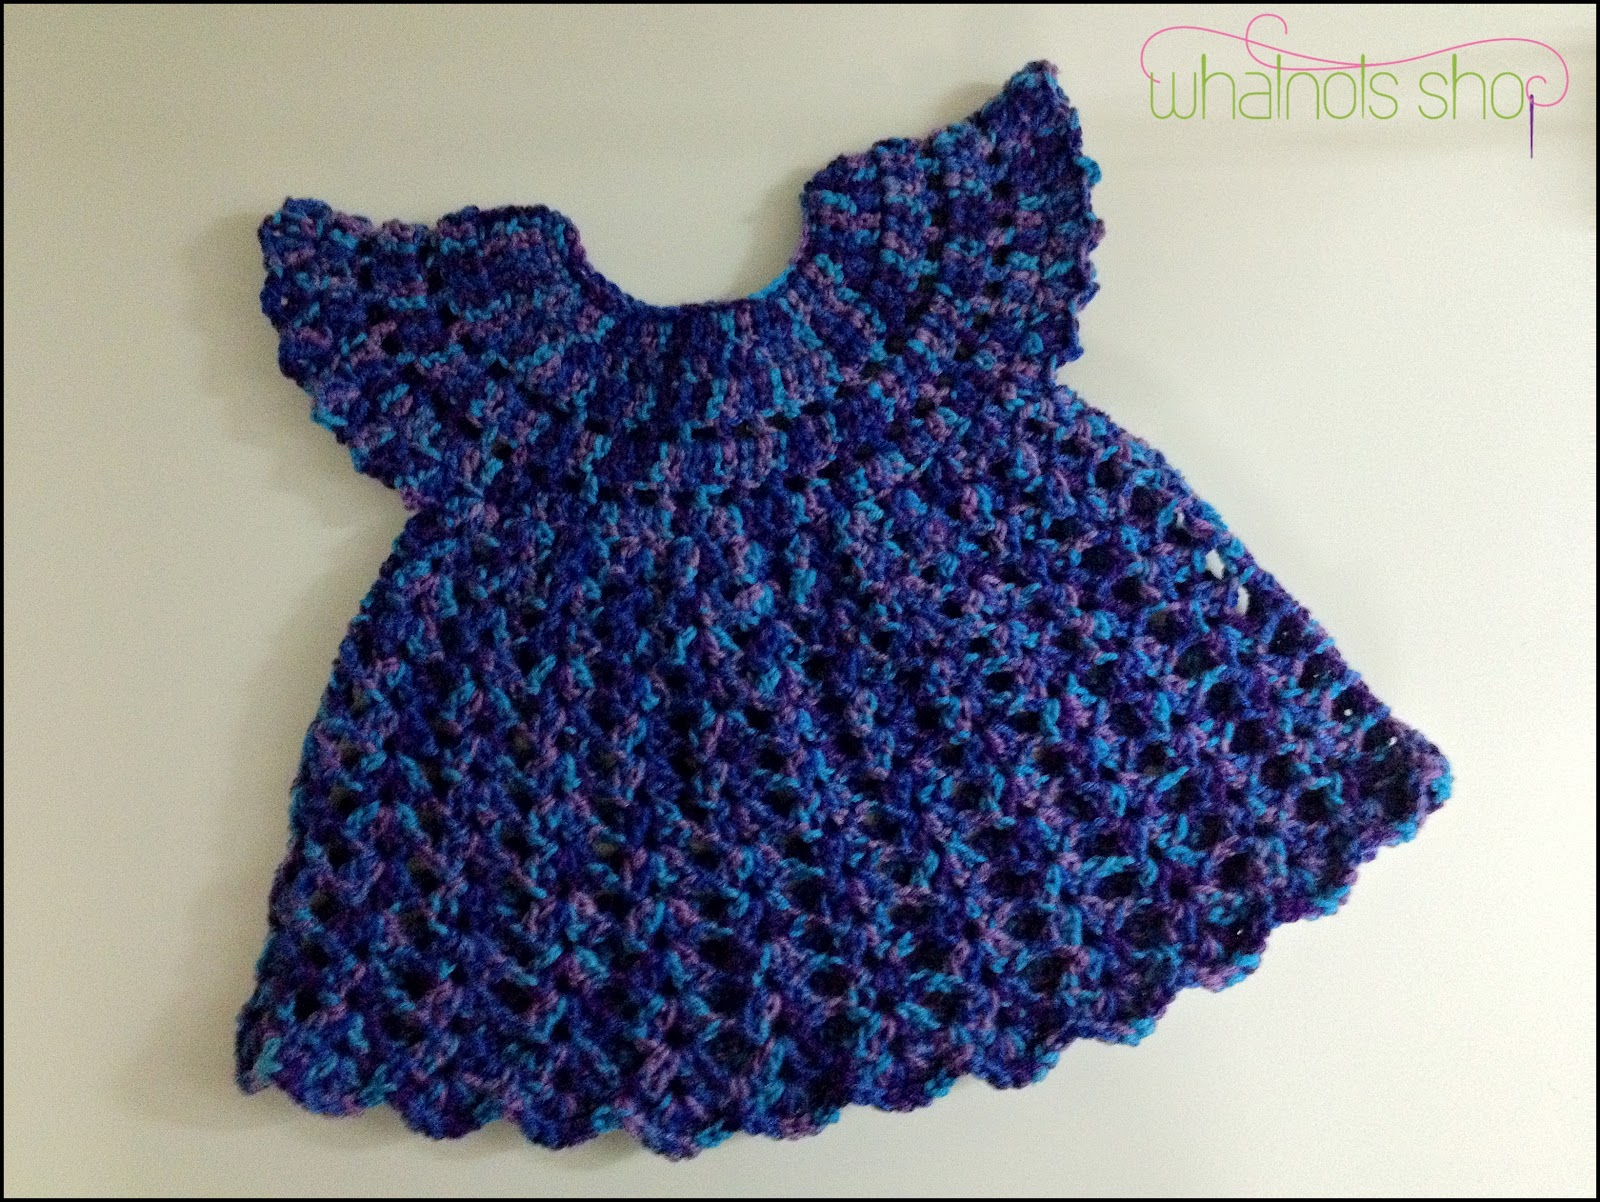 Baby Girls Frocks http://the-whatnots-shop.blogspot.com/2012/06/baby-girls-frock_23.html